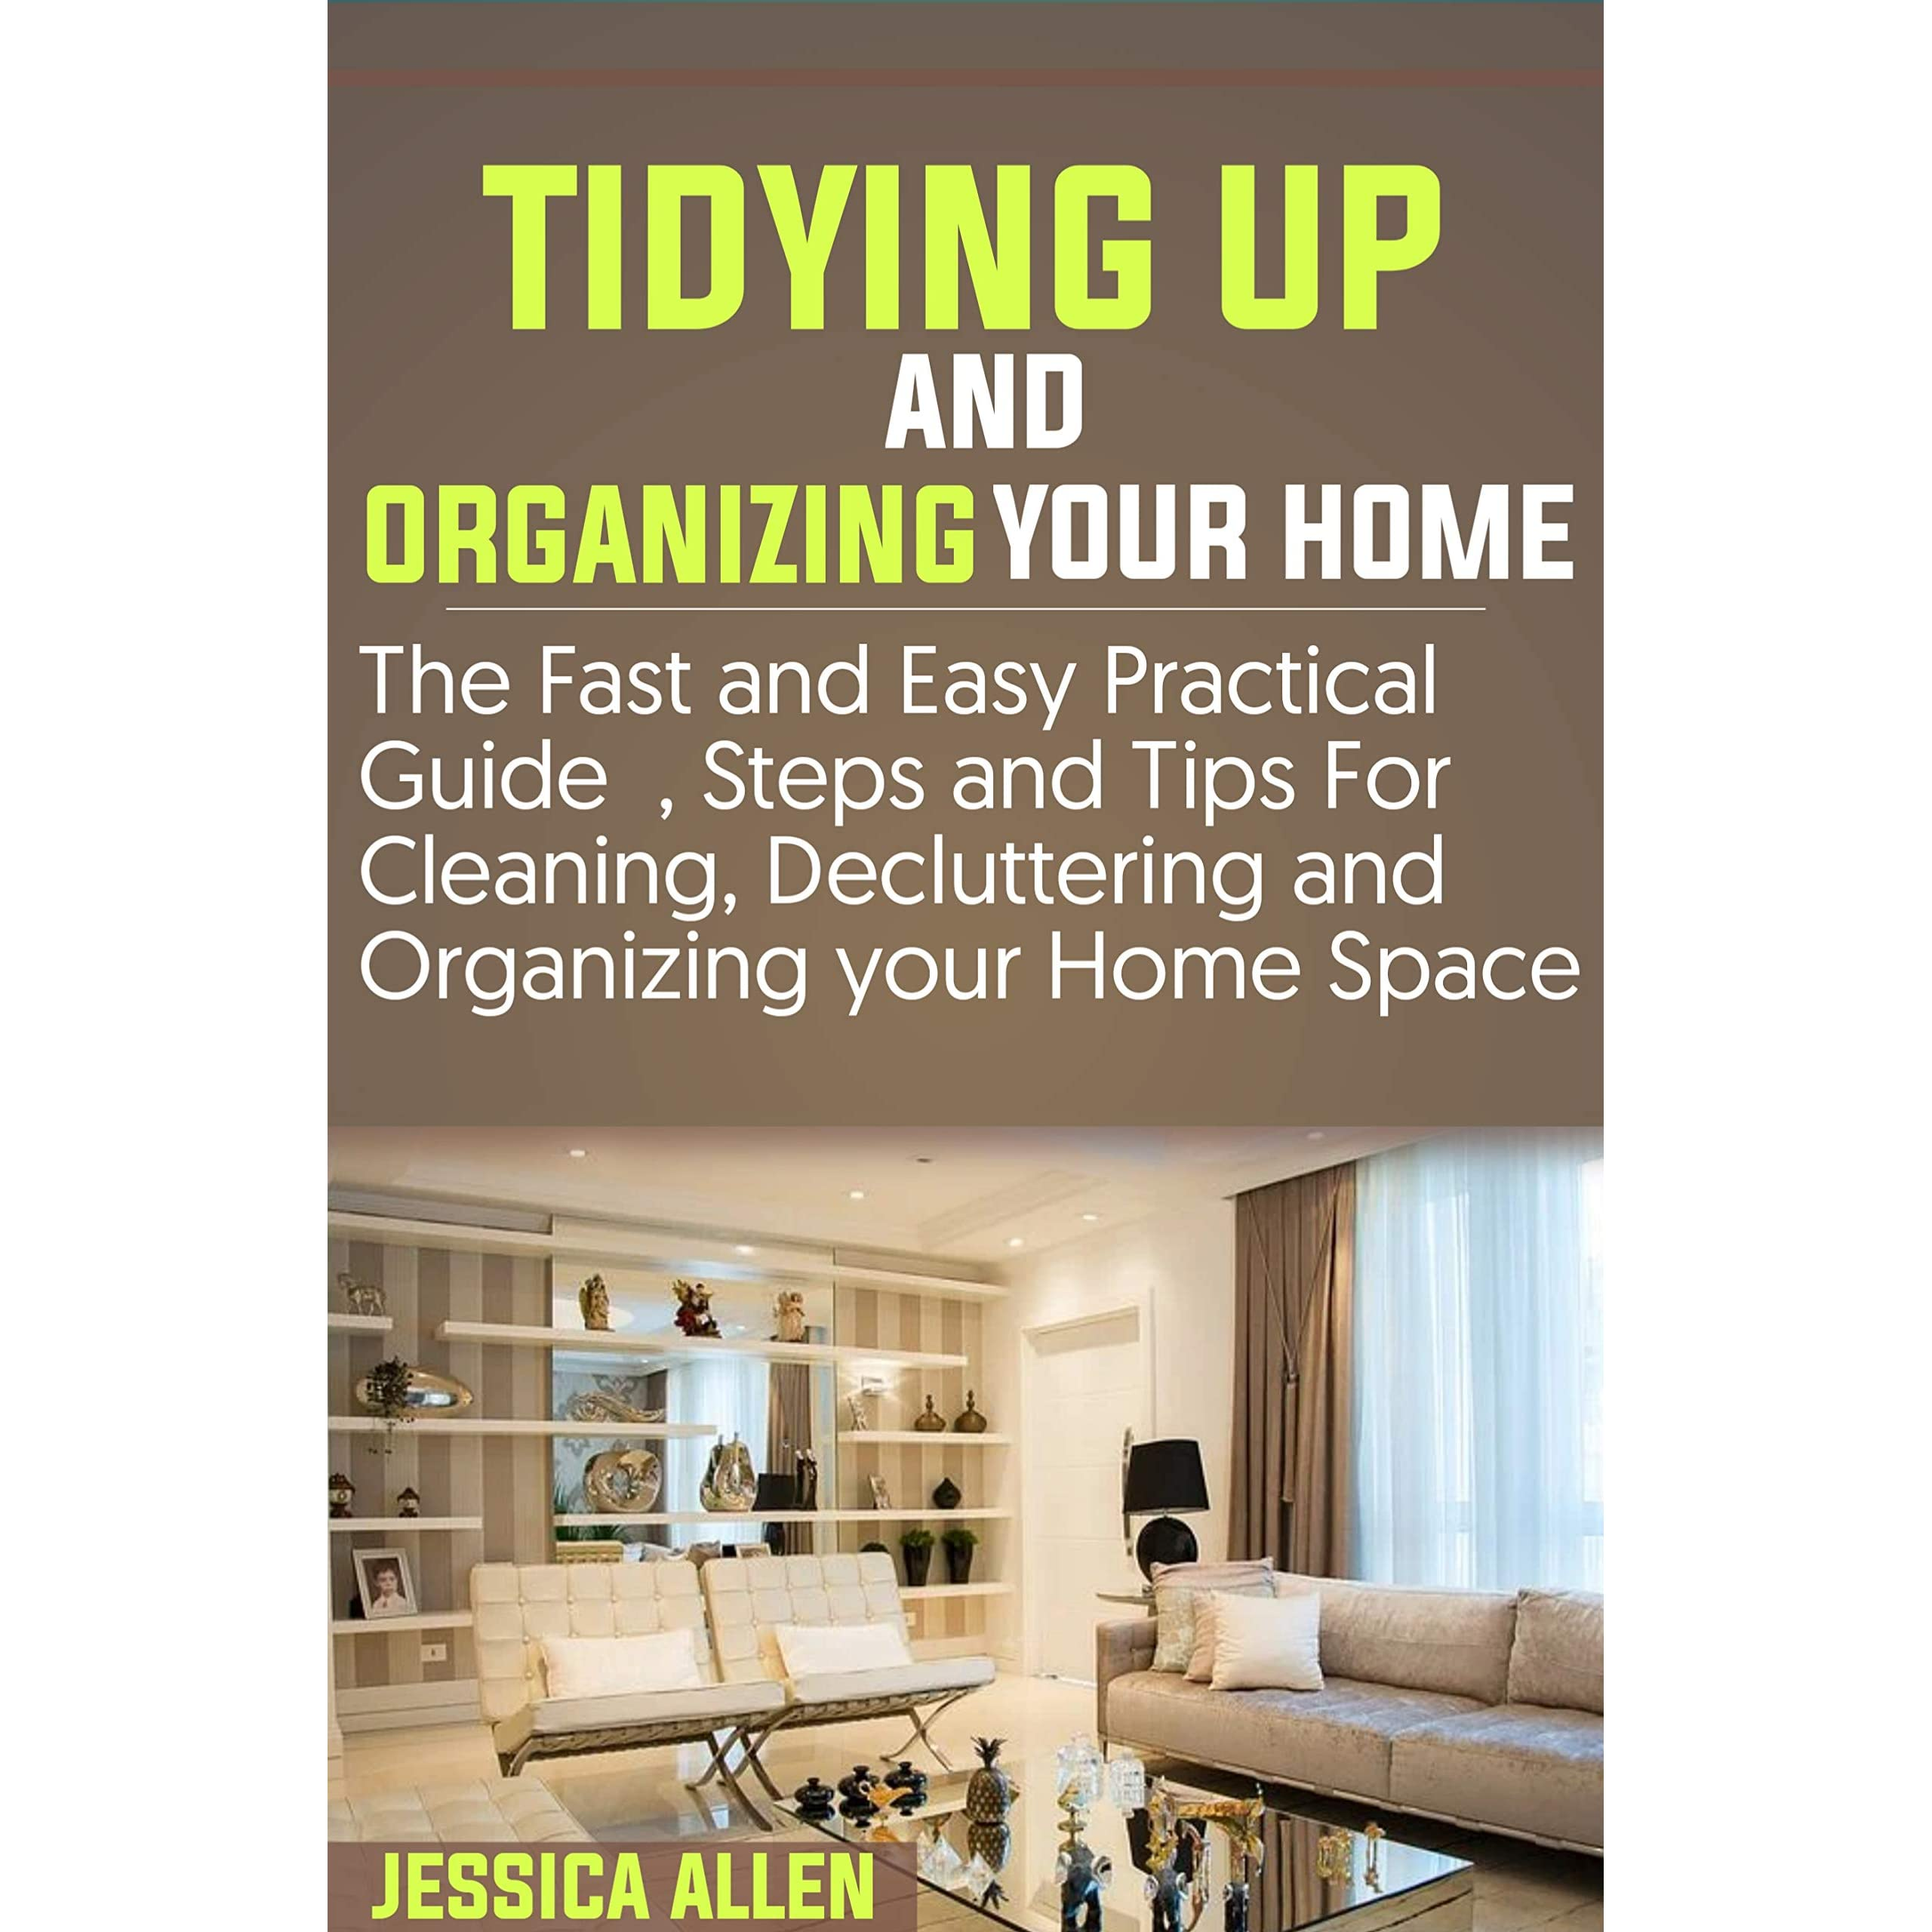 Tidying Up And Organizing Your Home The Fast And Easy Practical Guide Steps And Tips For Cleaning Decluttering And Organizing Your Home Space By Jessica Allen